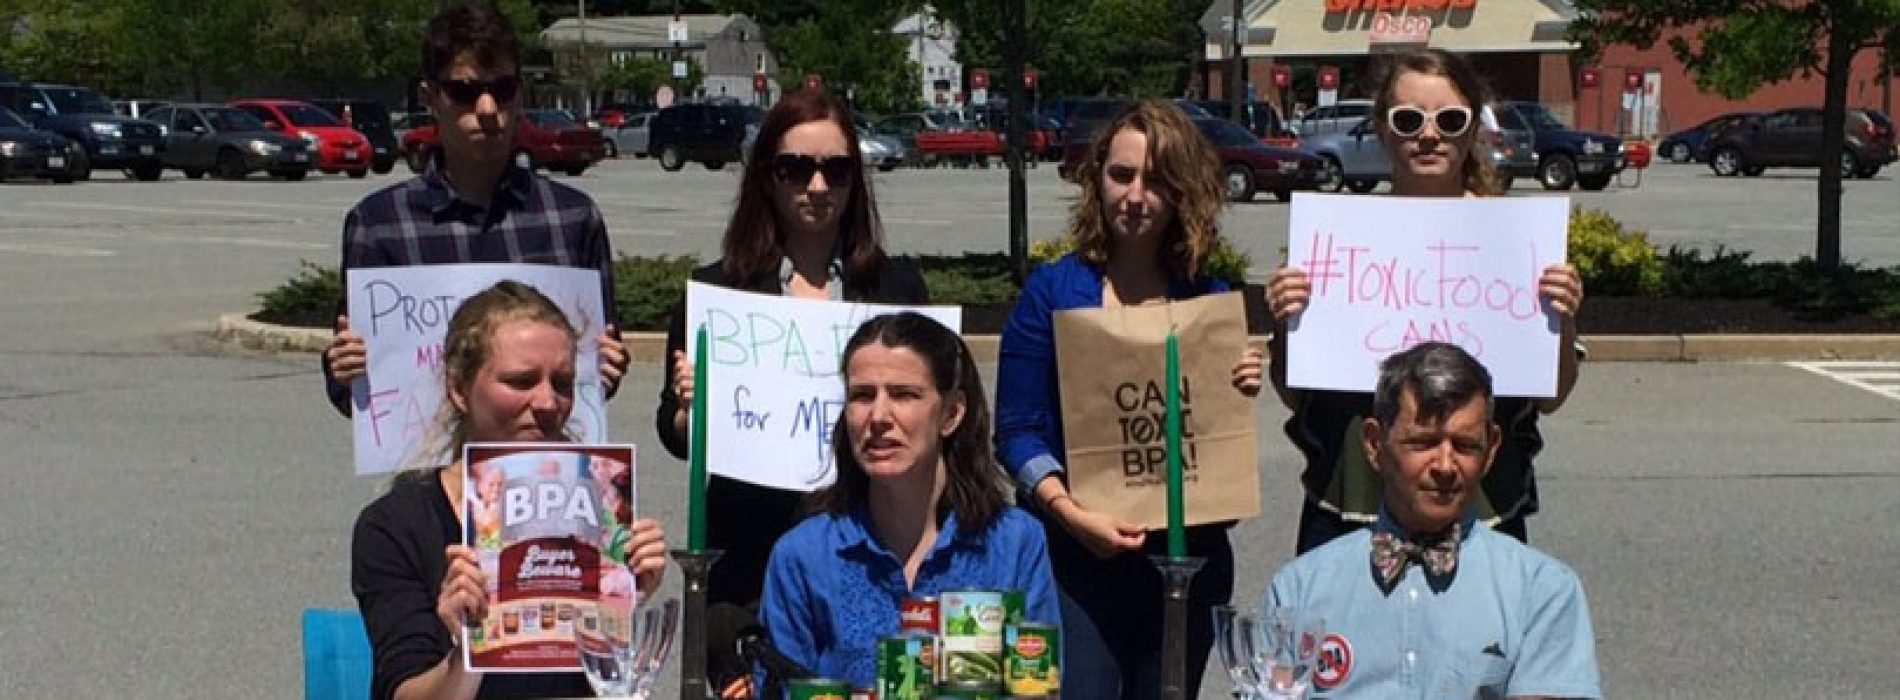 Shaws, Hannaford urged to act on products containing BPA